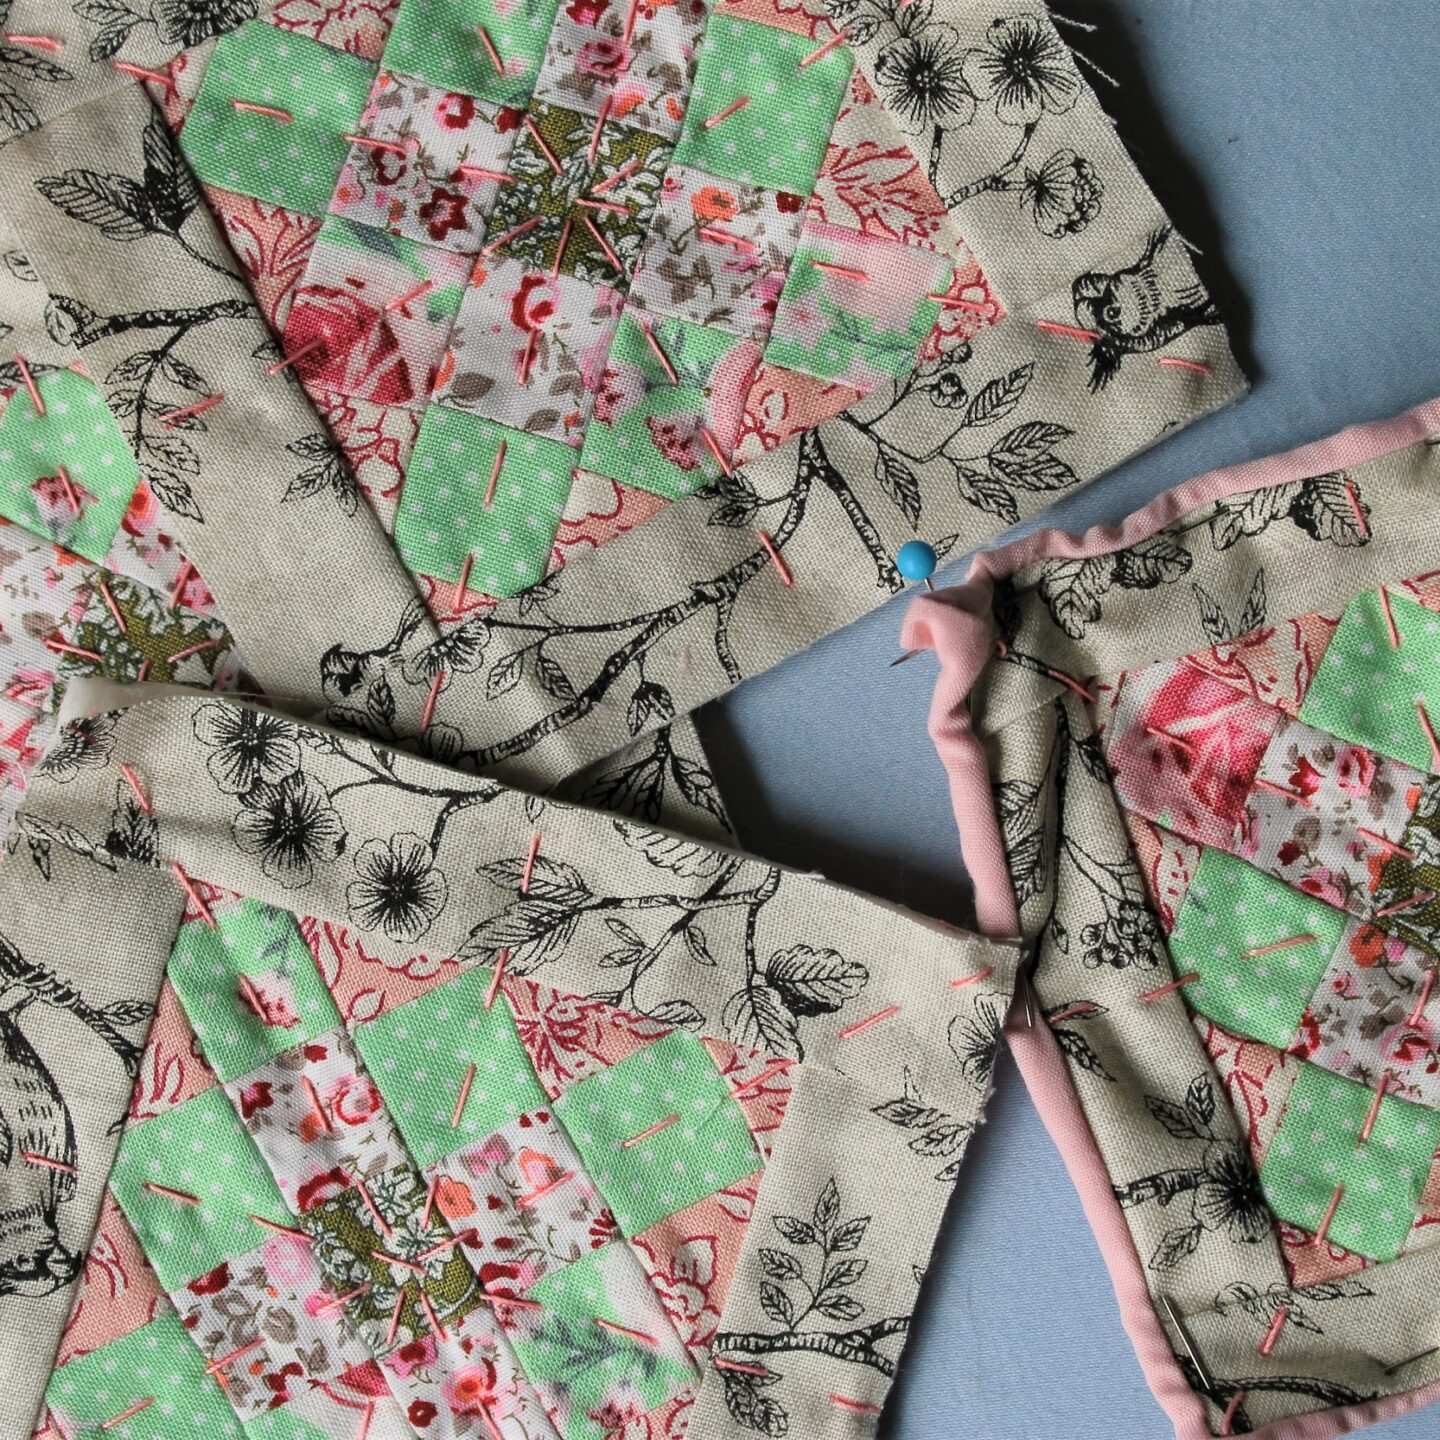 How to Make Quilts? A Quick Guide for the Clueless